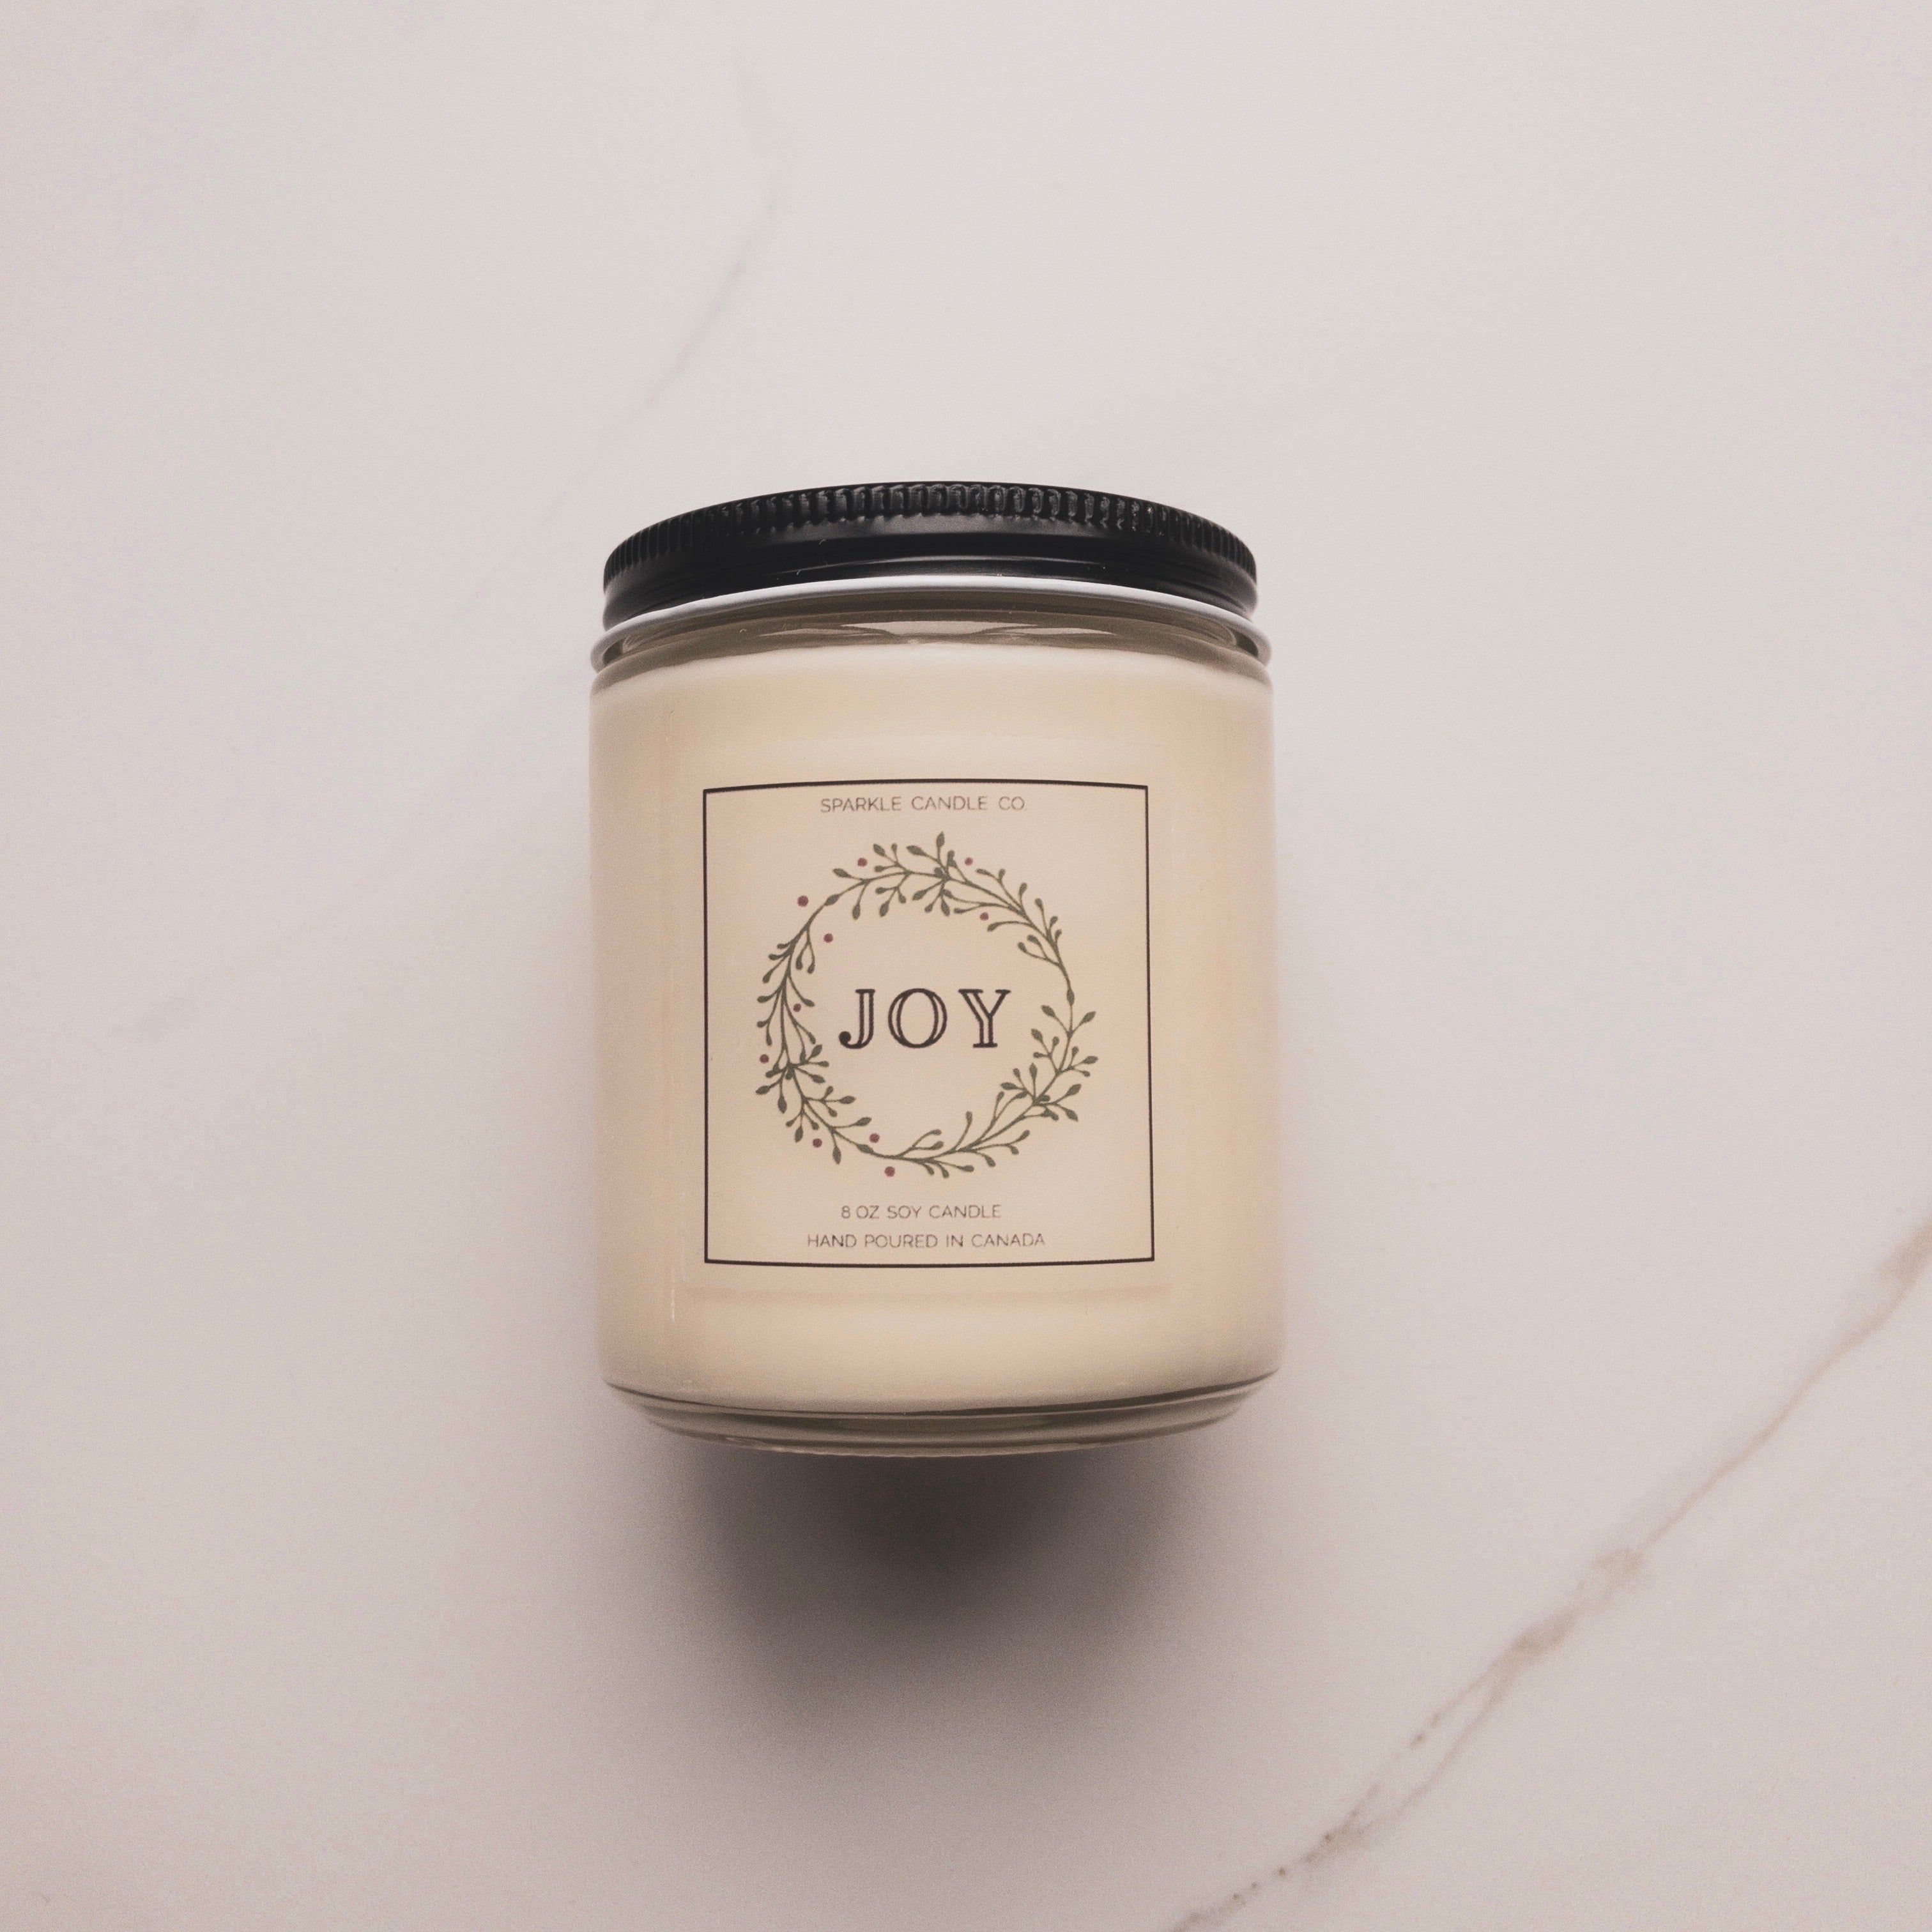 Sparkle Candle Co soy candle